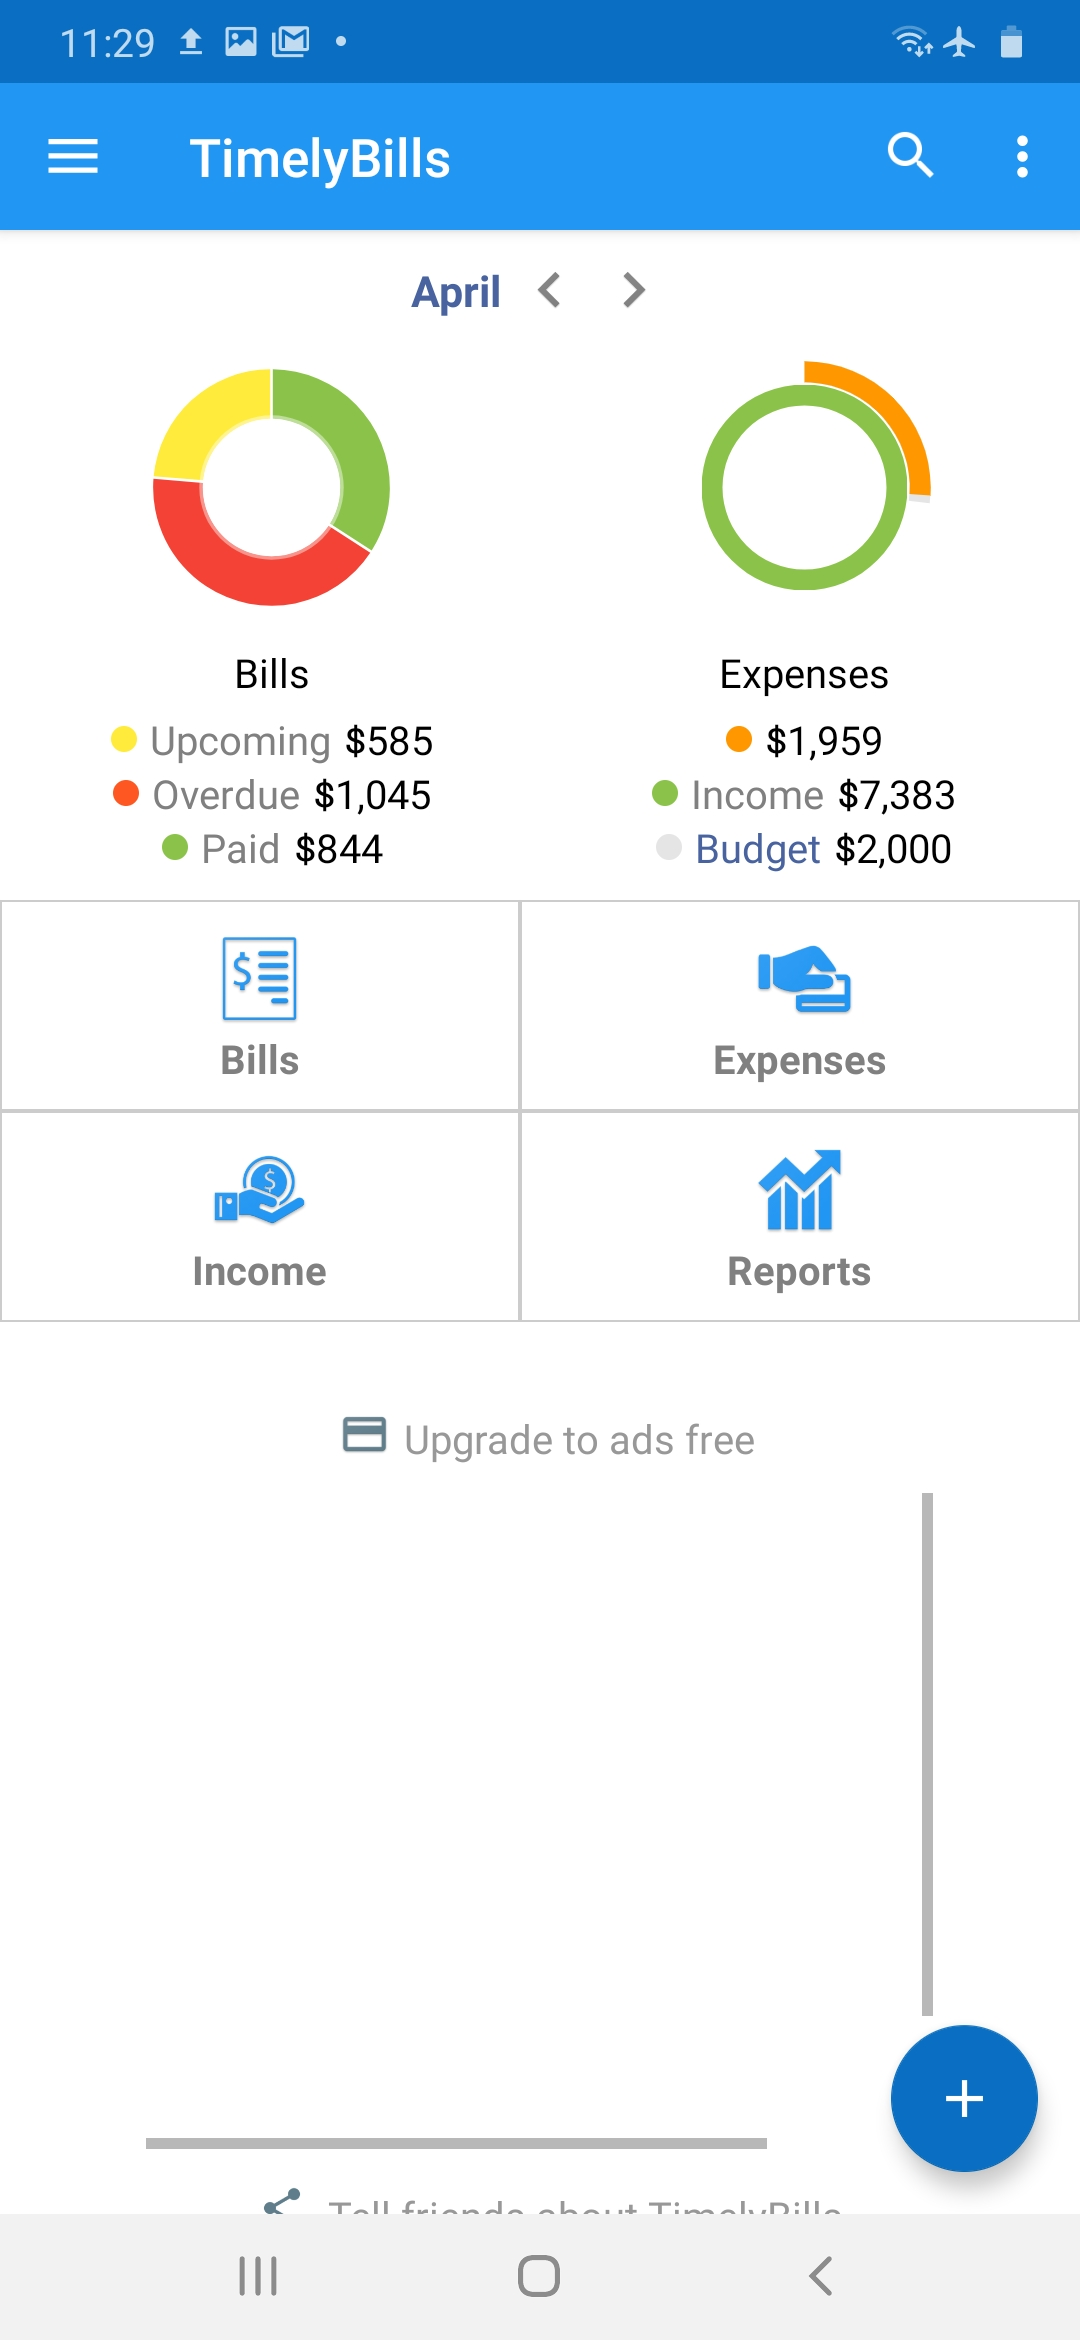 How to enable overspending alerts?